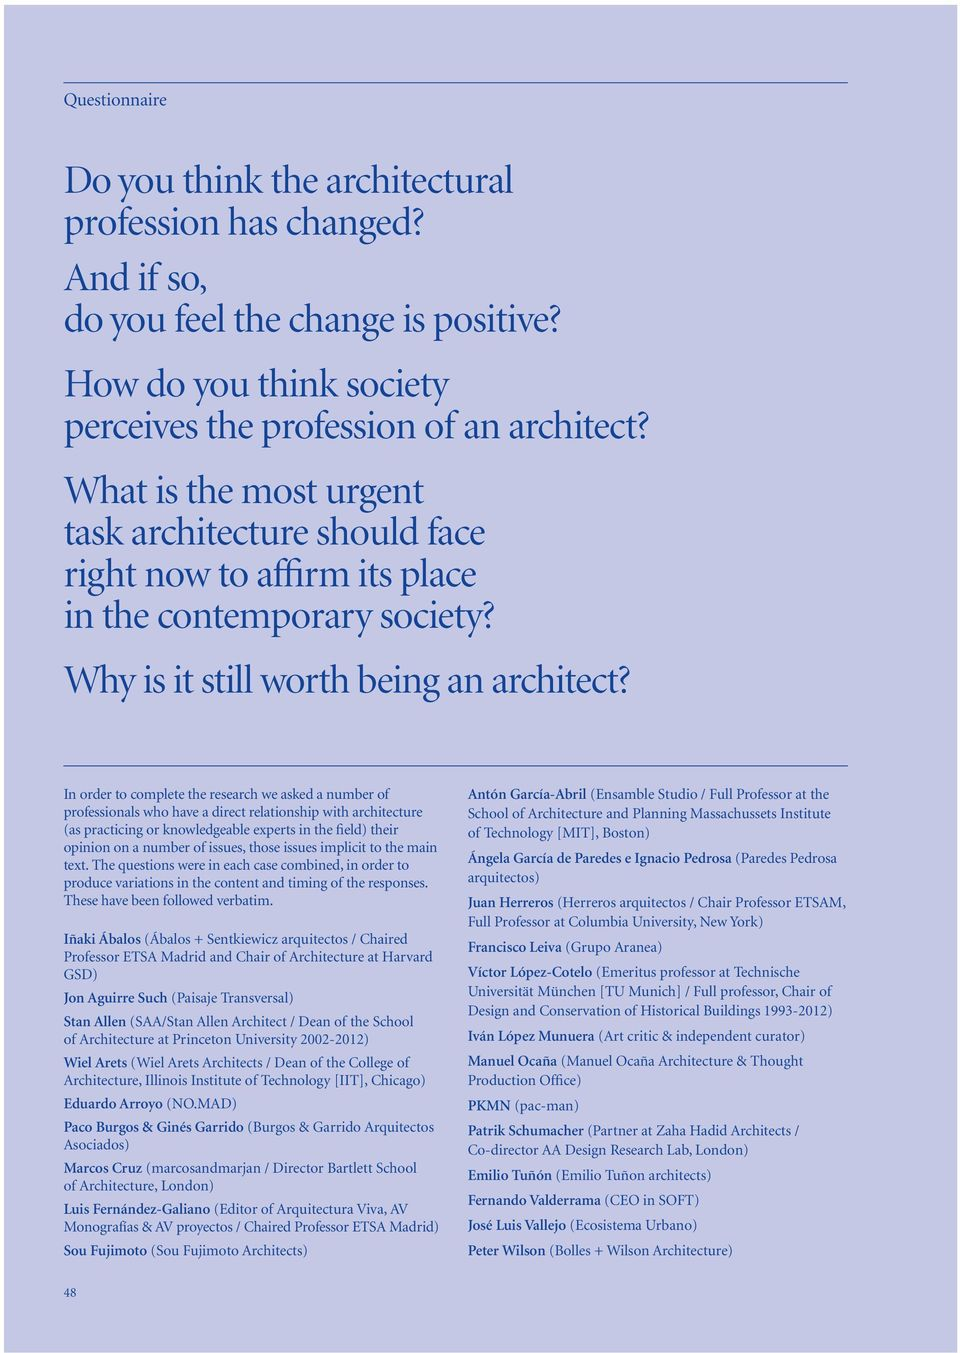 In order to complete the research we asked a number of professionals who have a direct relationship with architecture (as practicing or knowledgeable experts in the field) their opinion on a number